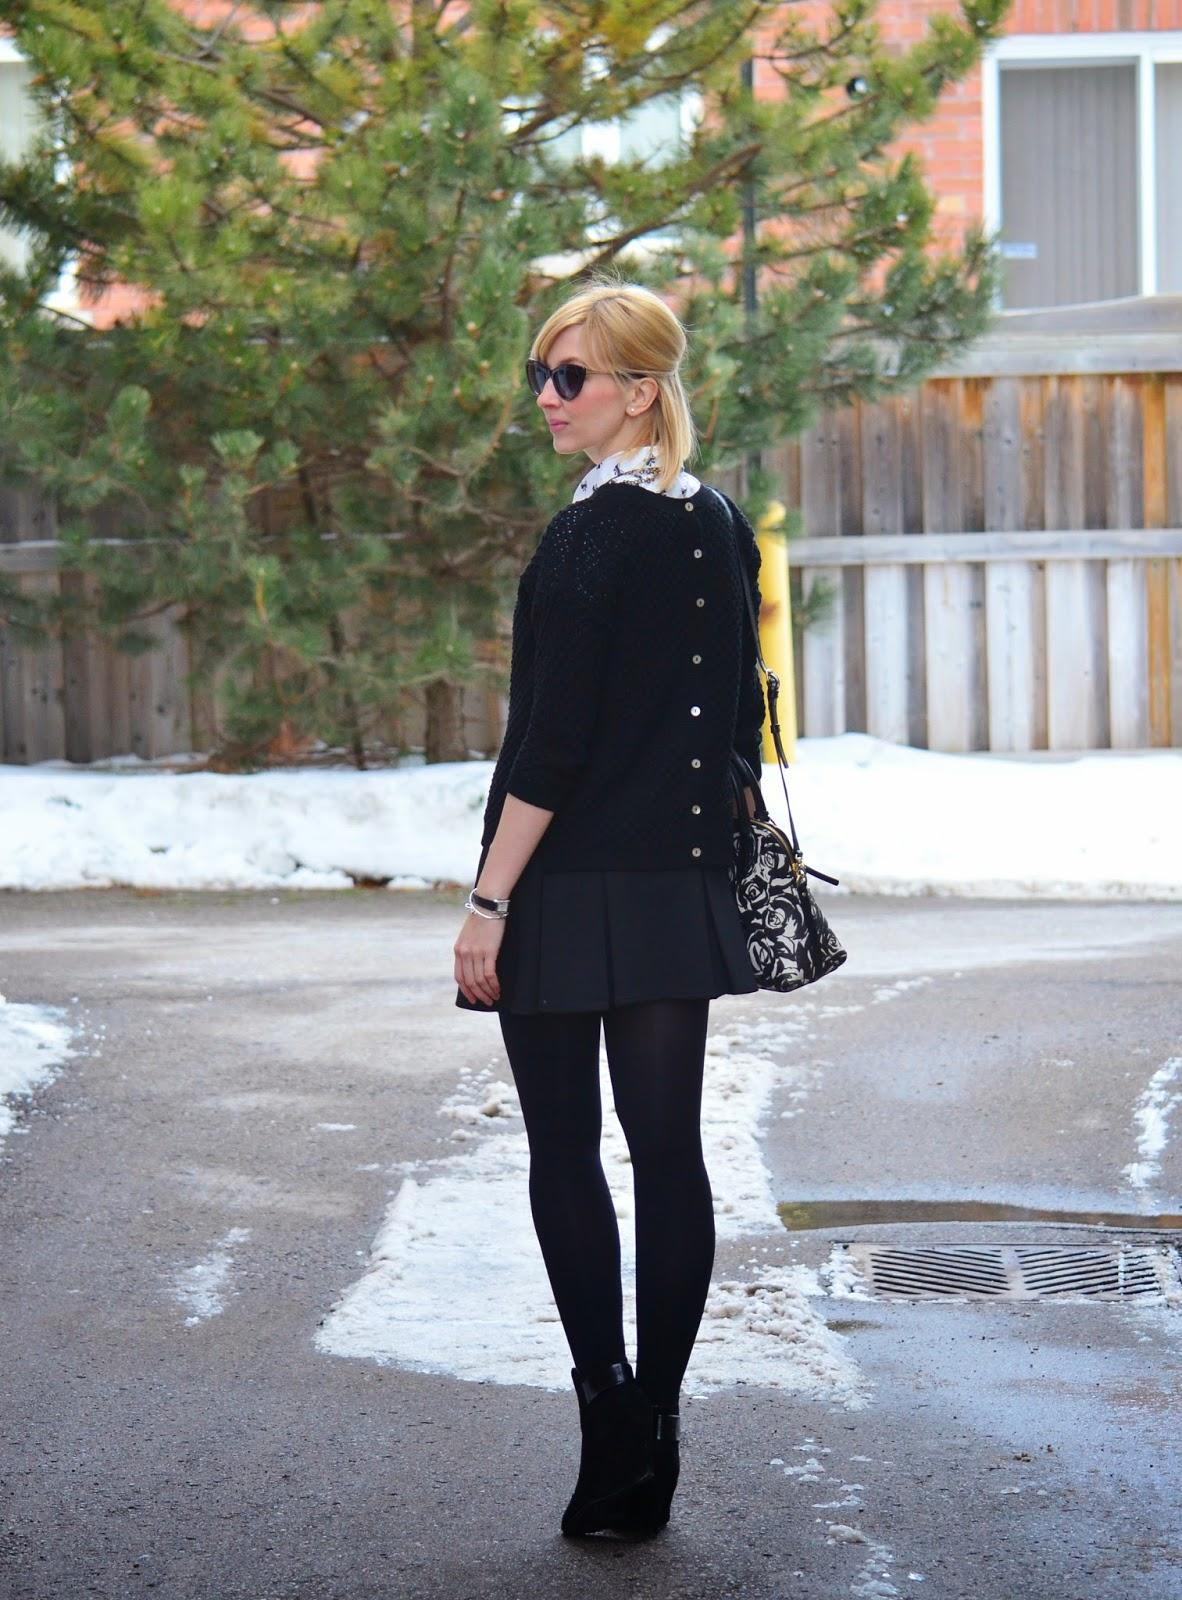 Style, OOTD, preppy, preppy style, black and white, Kate Spade, Zara, forever21, Smart Set, spring style, bow blouse style, bow shirt style, prep